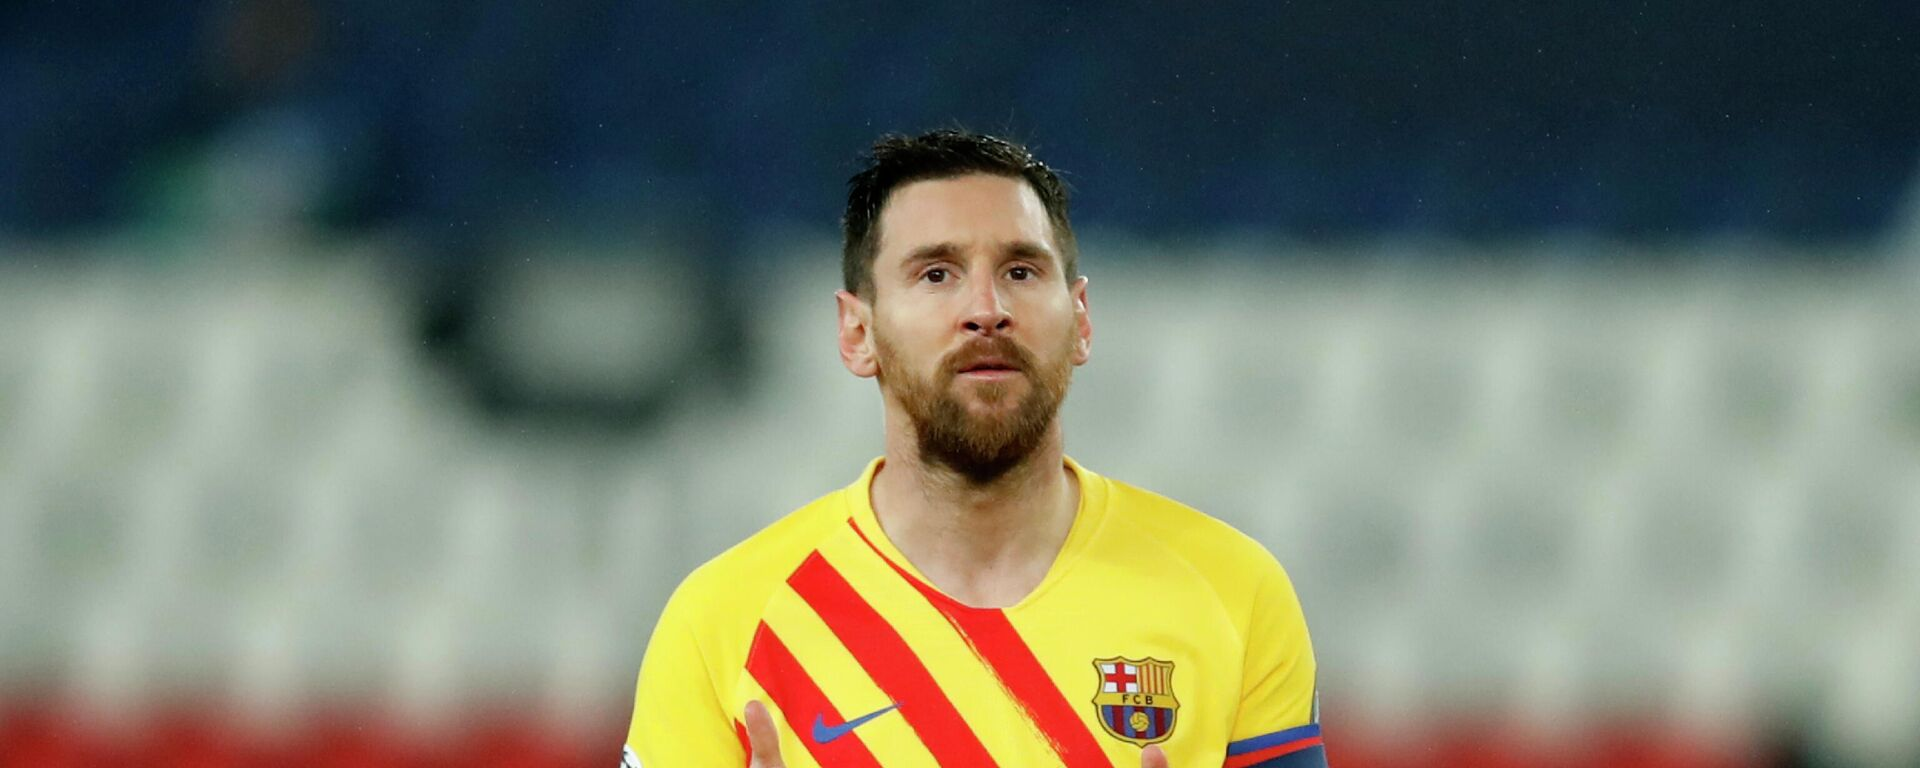 Lionel Messi bei Champions League - SNA, 1920, 06.08.2021